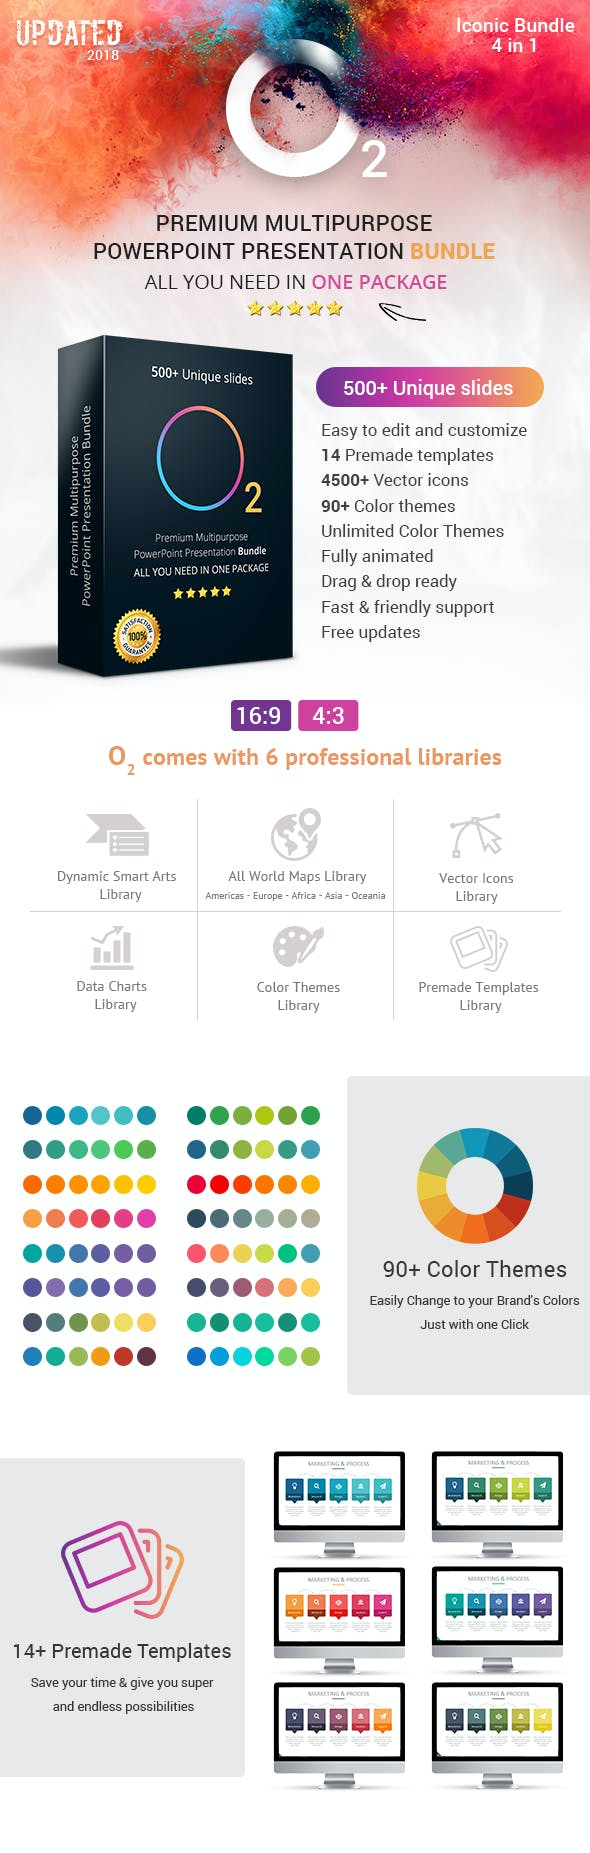 o2 complete business solutions top powerpoint templates bundle by